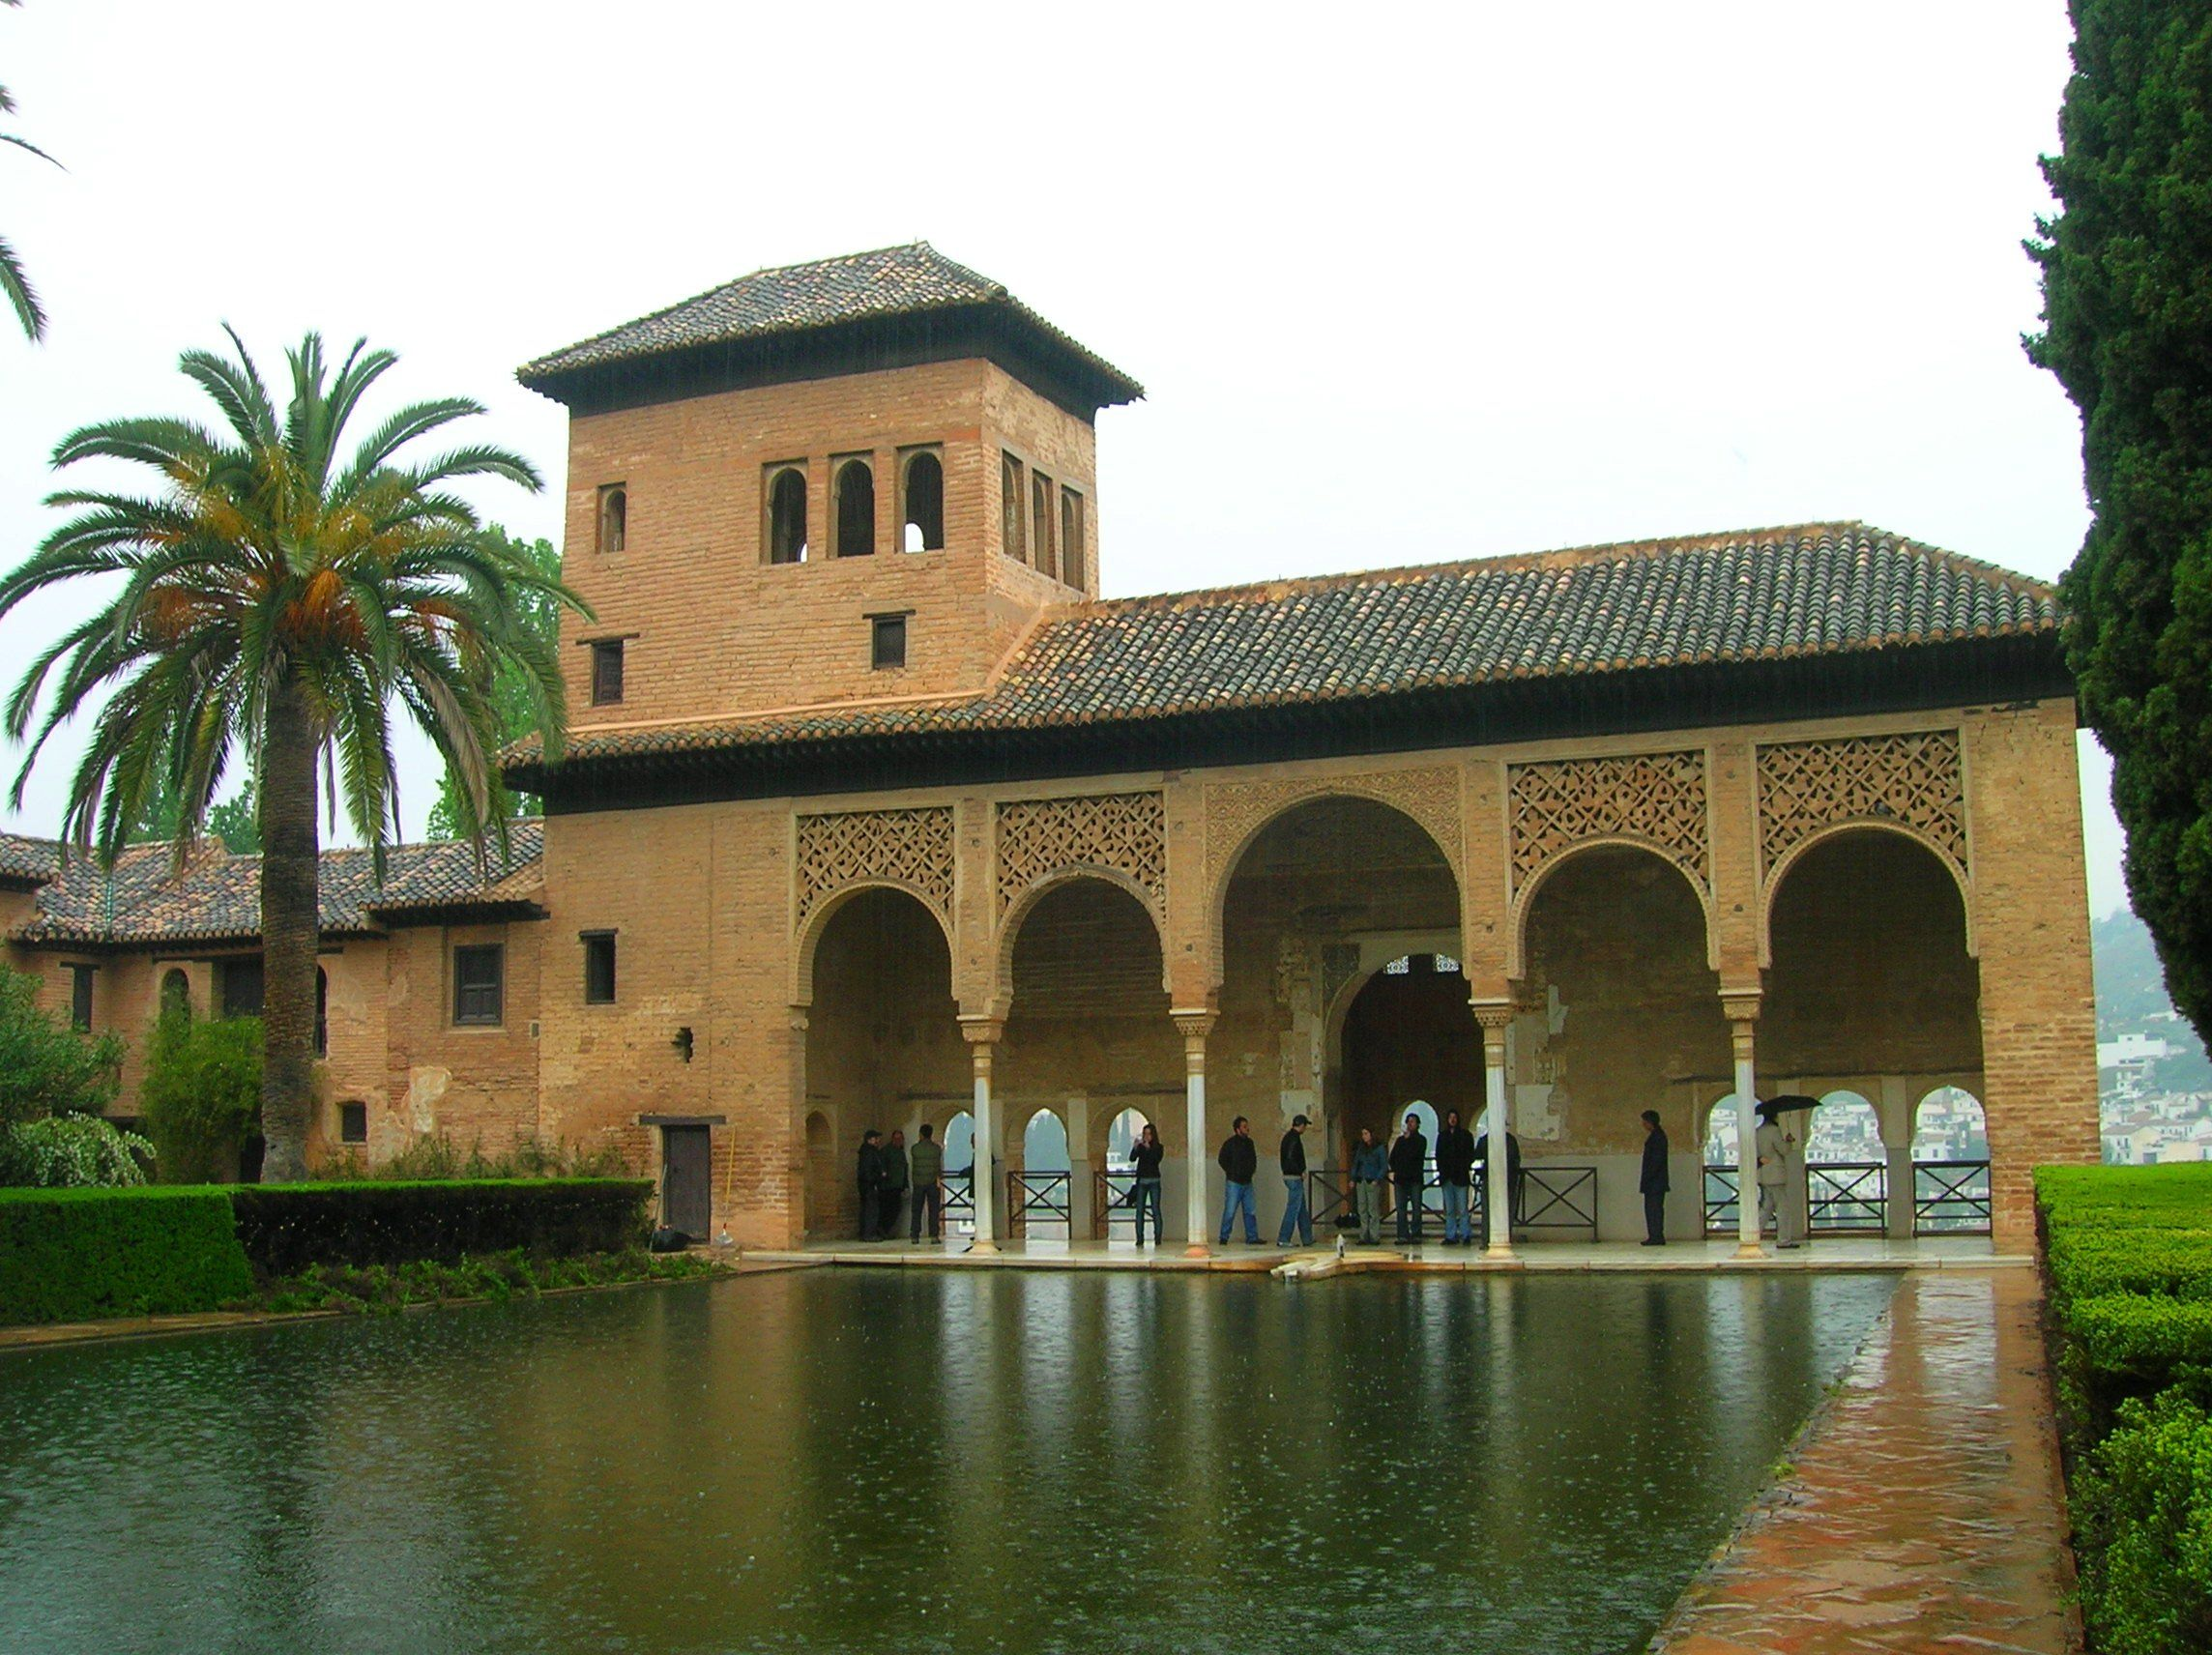 California mission style architecture - The Most Famous Spanish Style The Alhambra Where Columbus Had An Audience With The